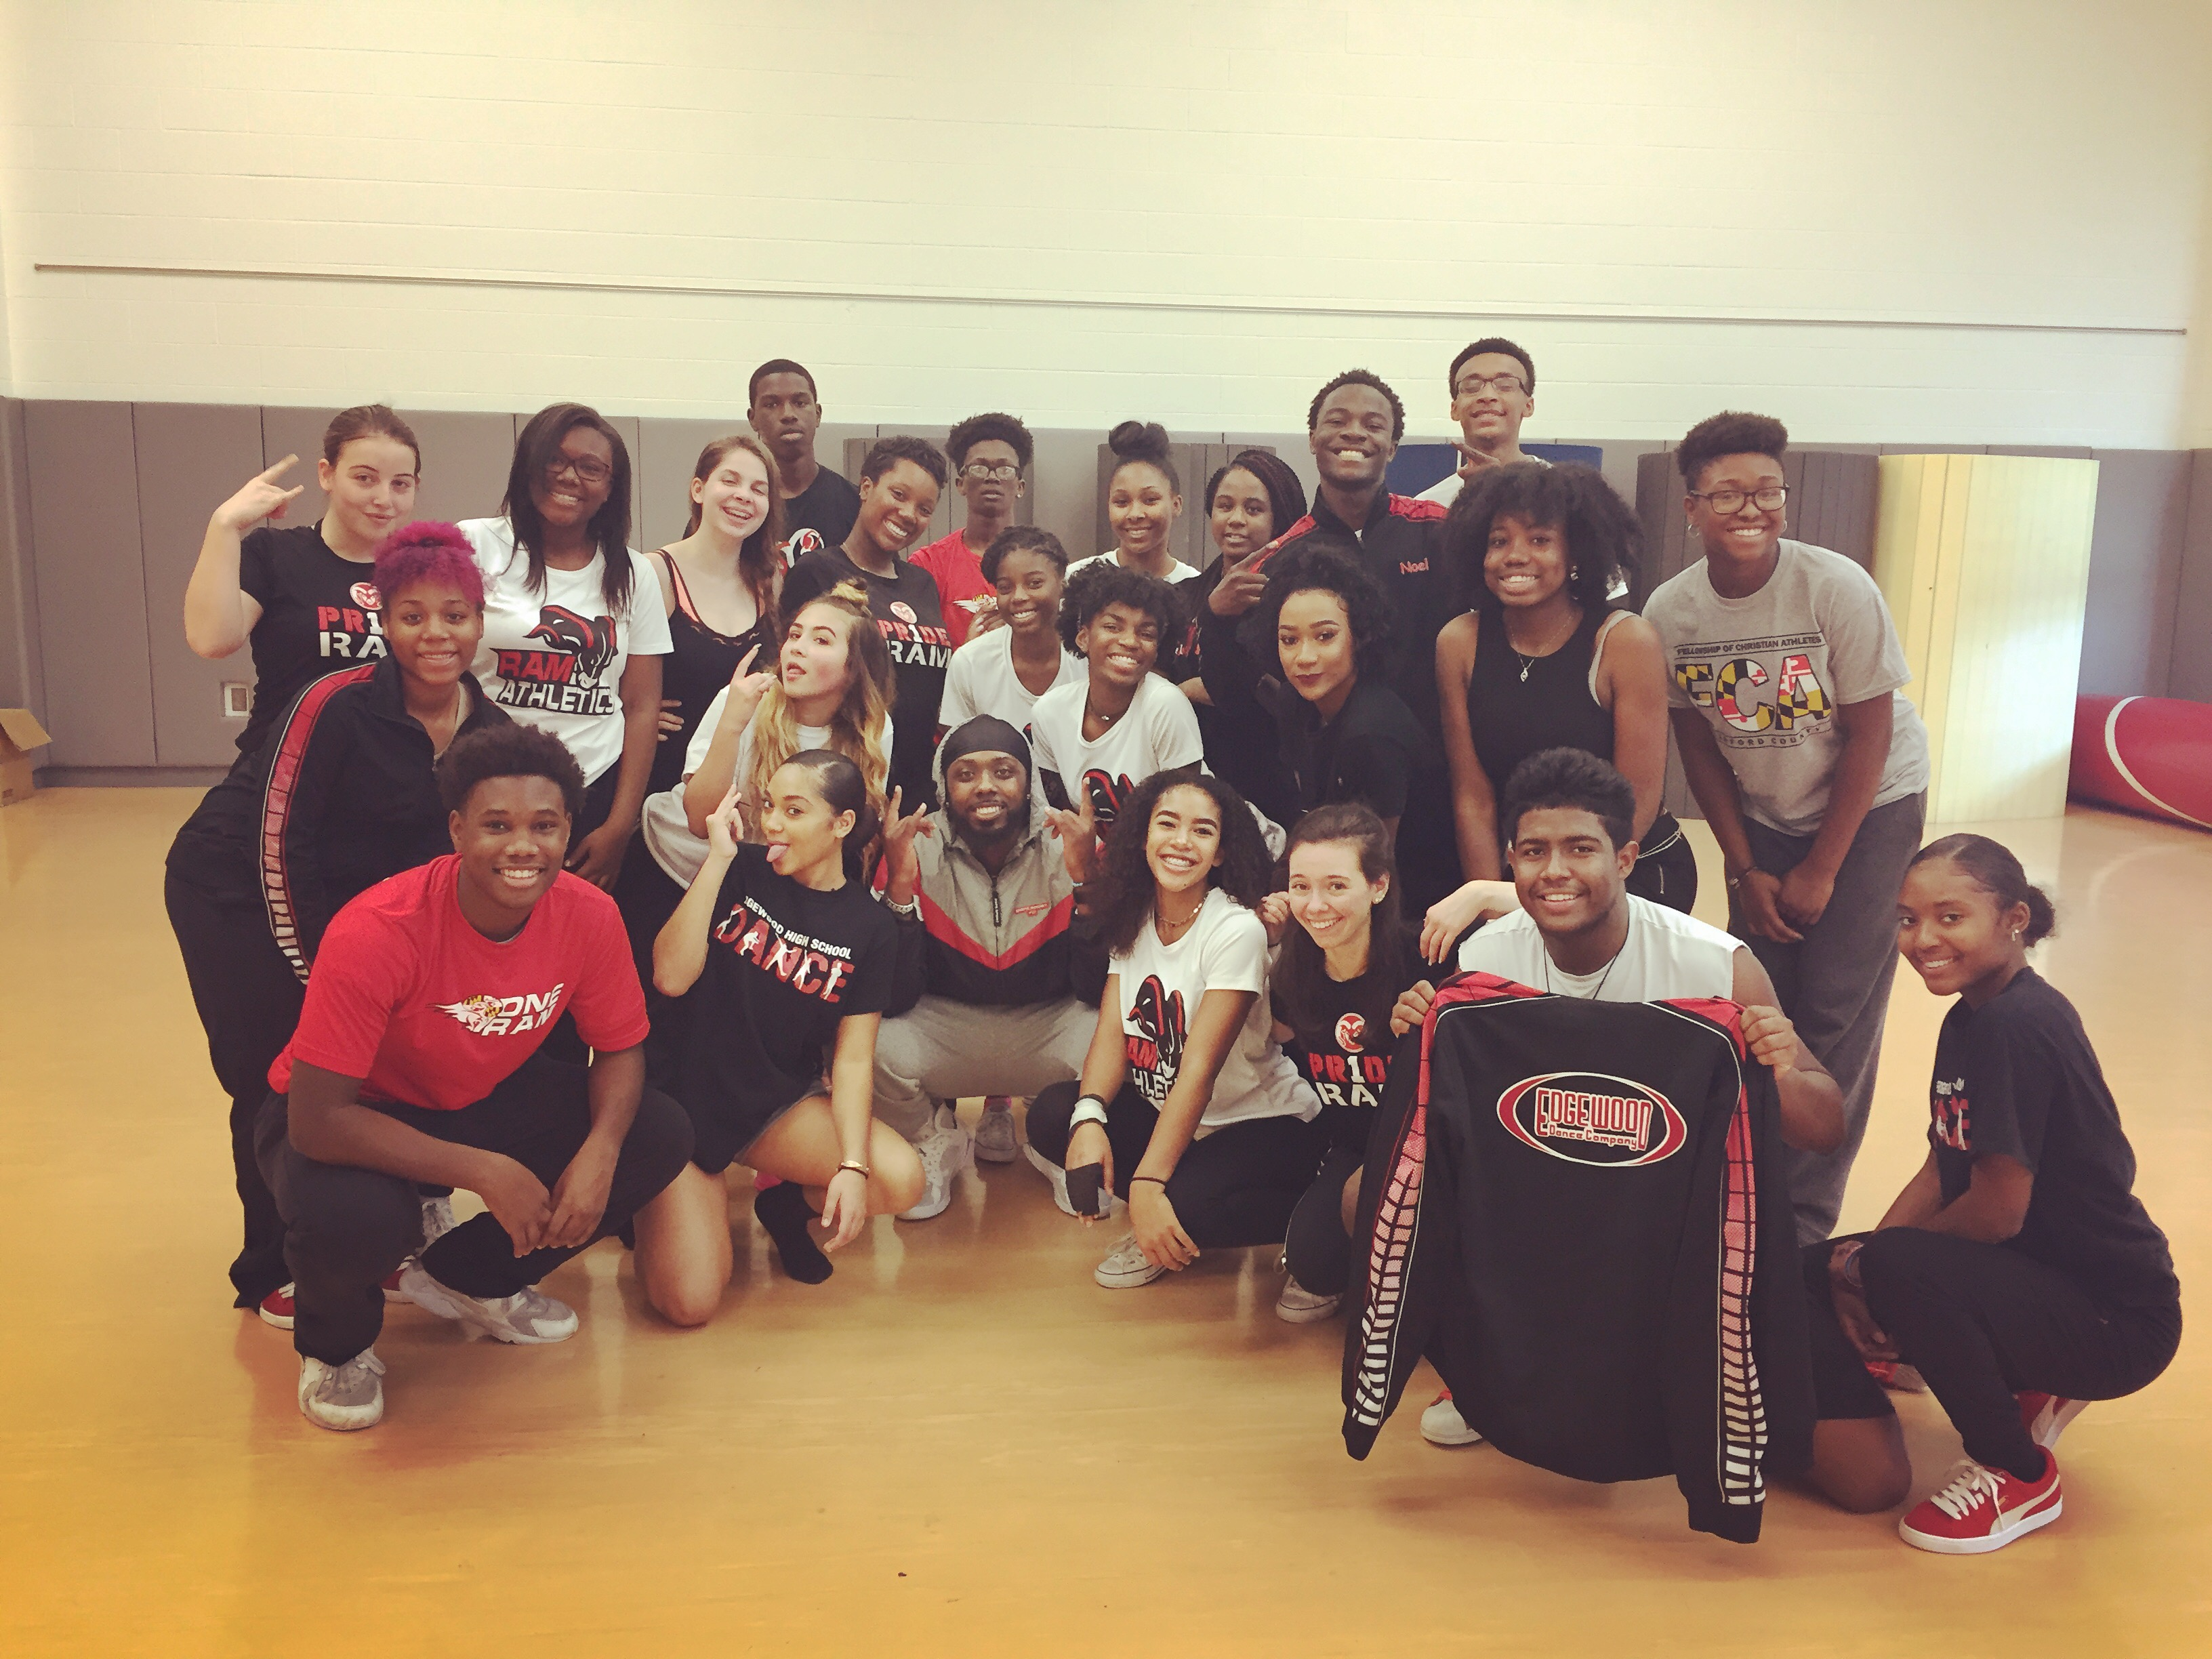 Edgewood High School Dance Team